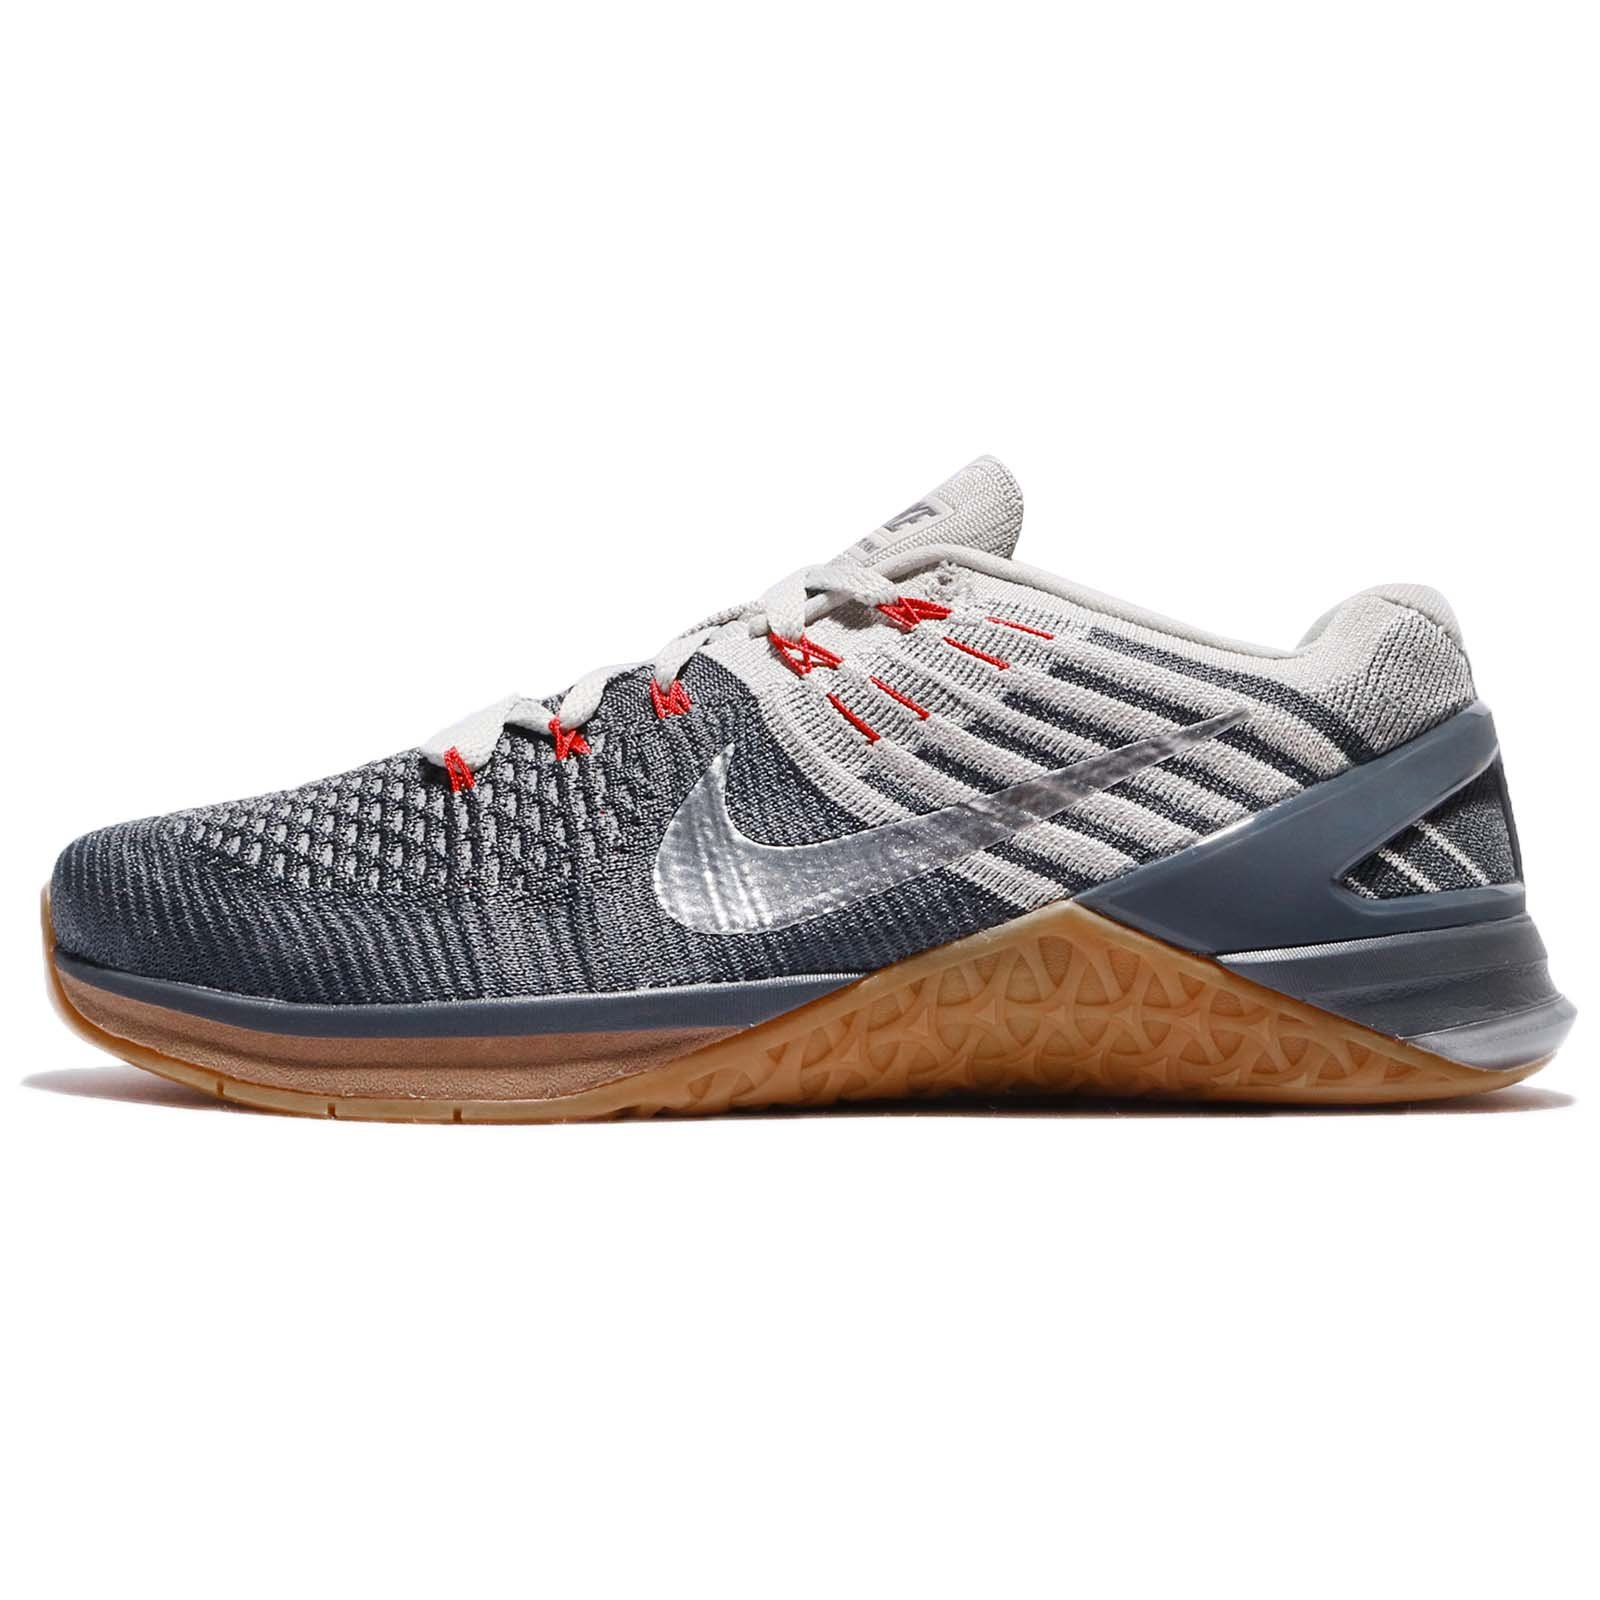 purchase cheap 9923e d5c77 Galleon - NIKE Metcon DSX Flyknit 852930-012 Dark Grey Stucco Silver Men s  Training Shoes (7)